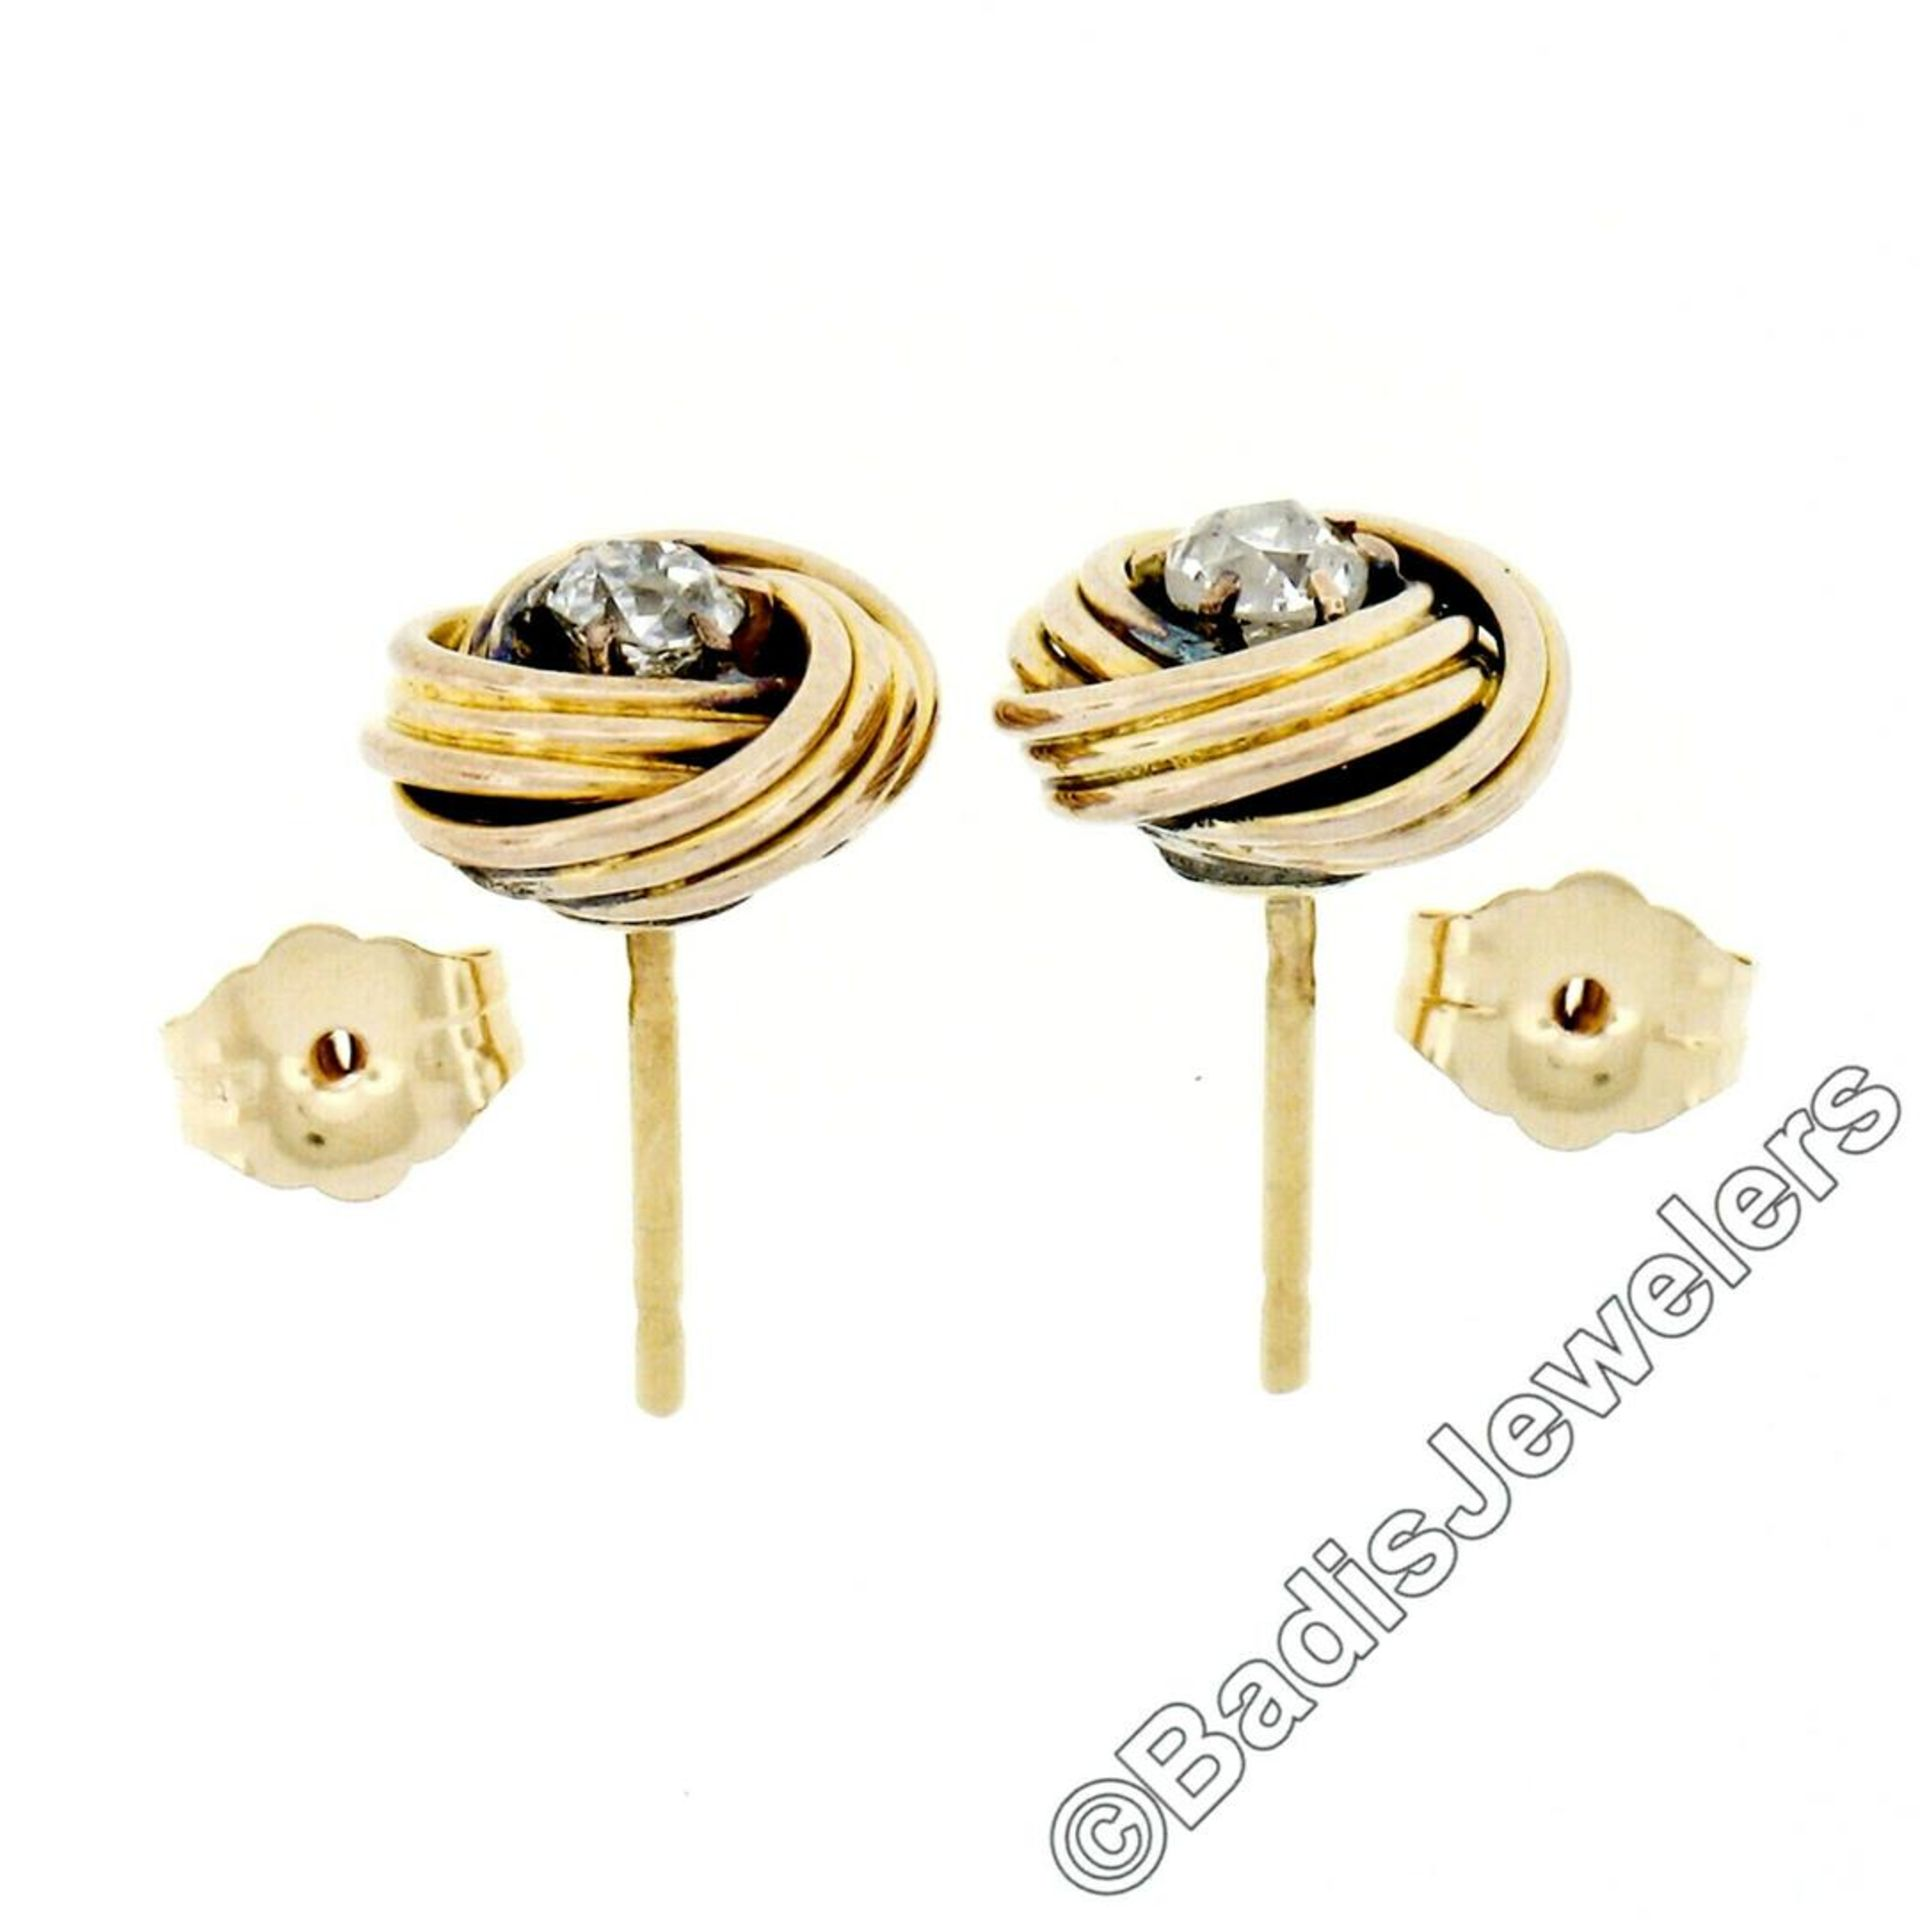 Victorian 14kt Yellow Gold 0.36 ctw Old Mine Cut Diamond Love Knot Stud Earrings - Image 4 of 5